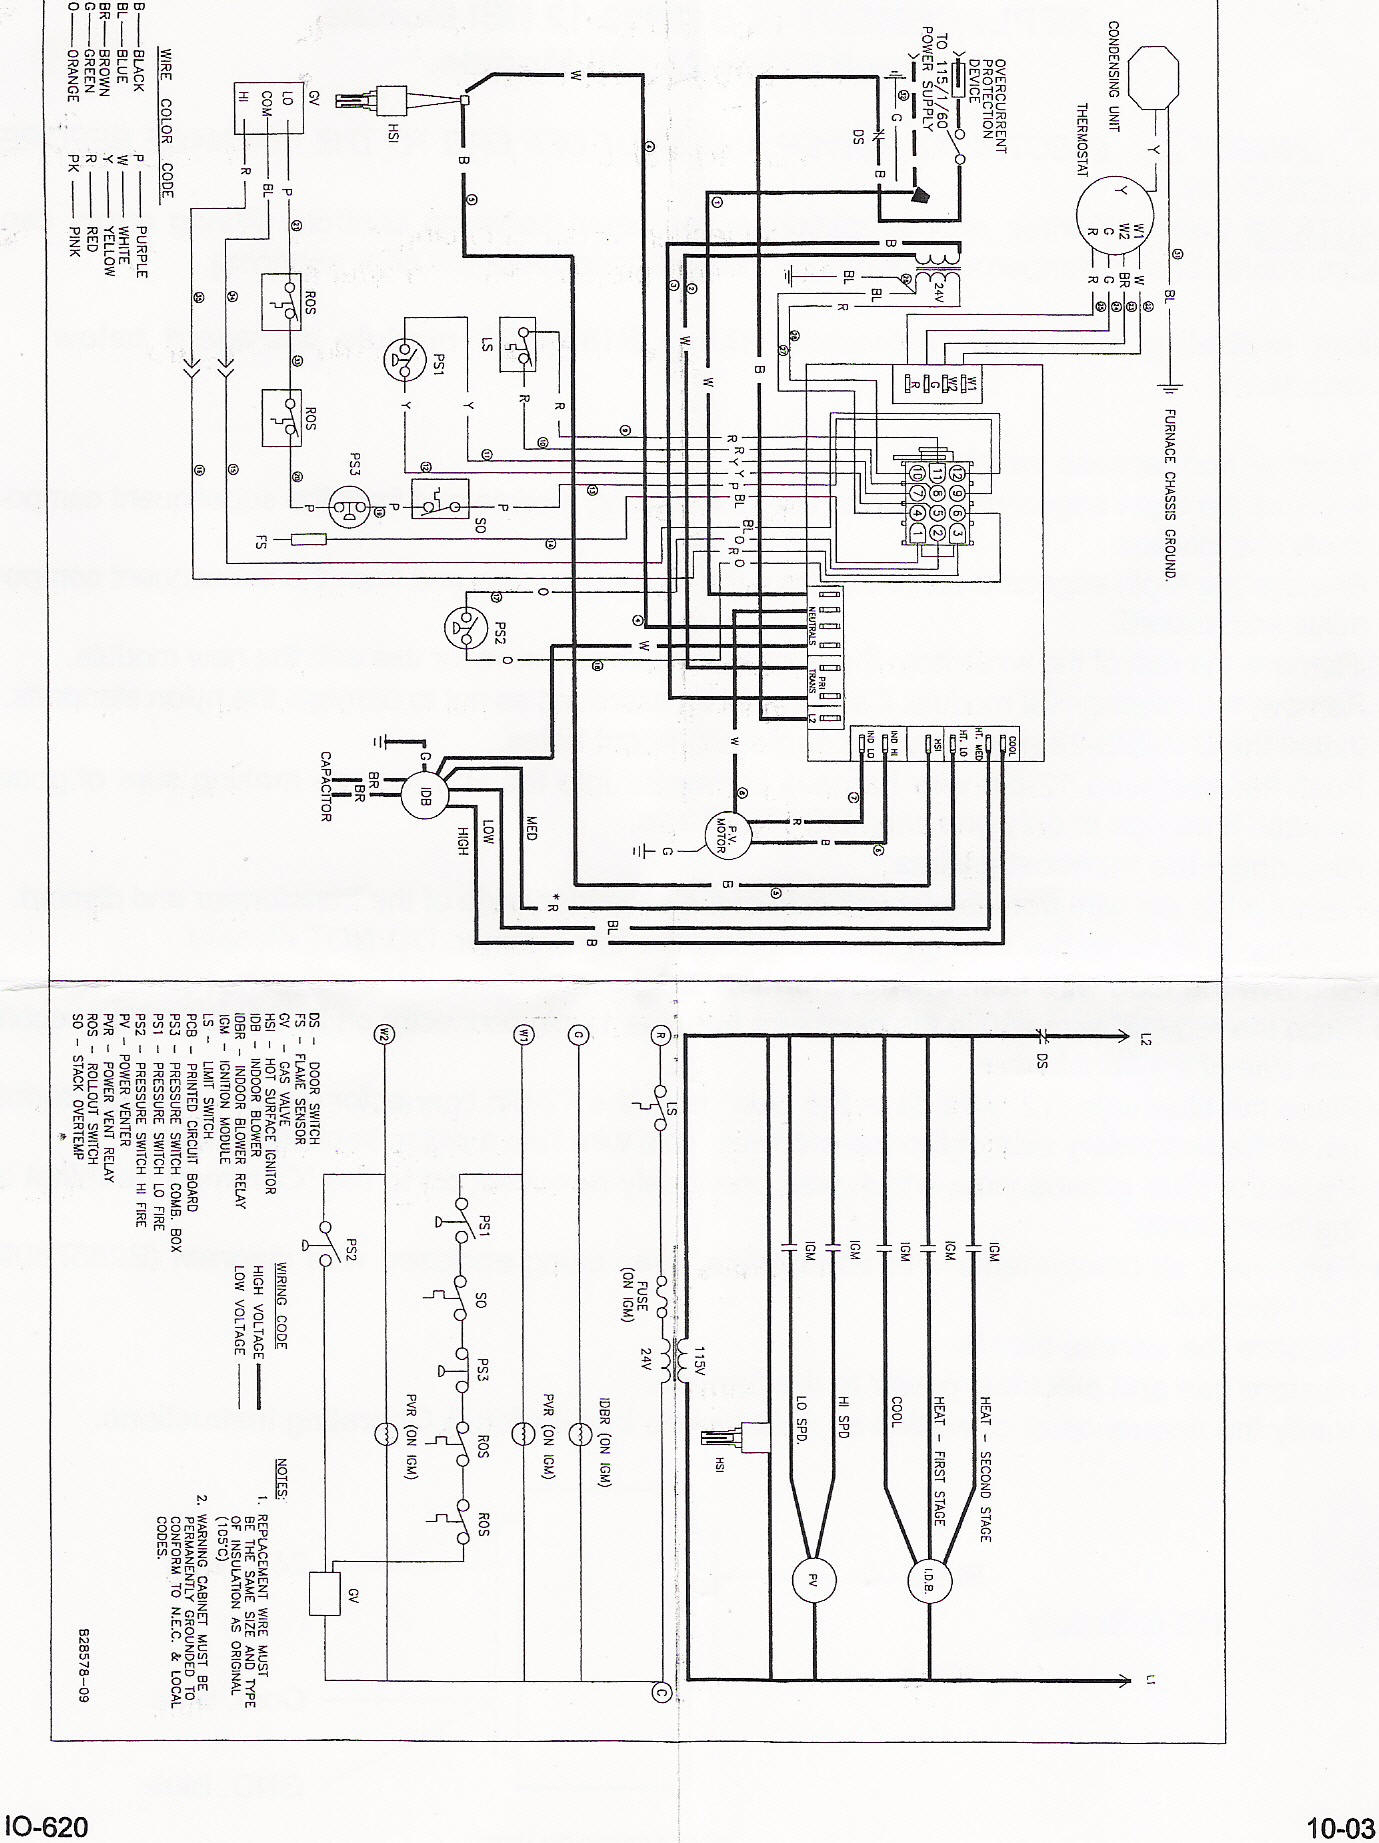 80Uhg Lennox Furnace Wiring Diagram | Wiring Diagram - Furnace Control Board Wiring Diagram